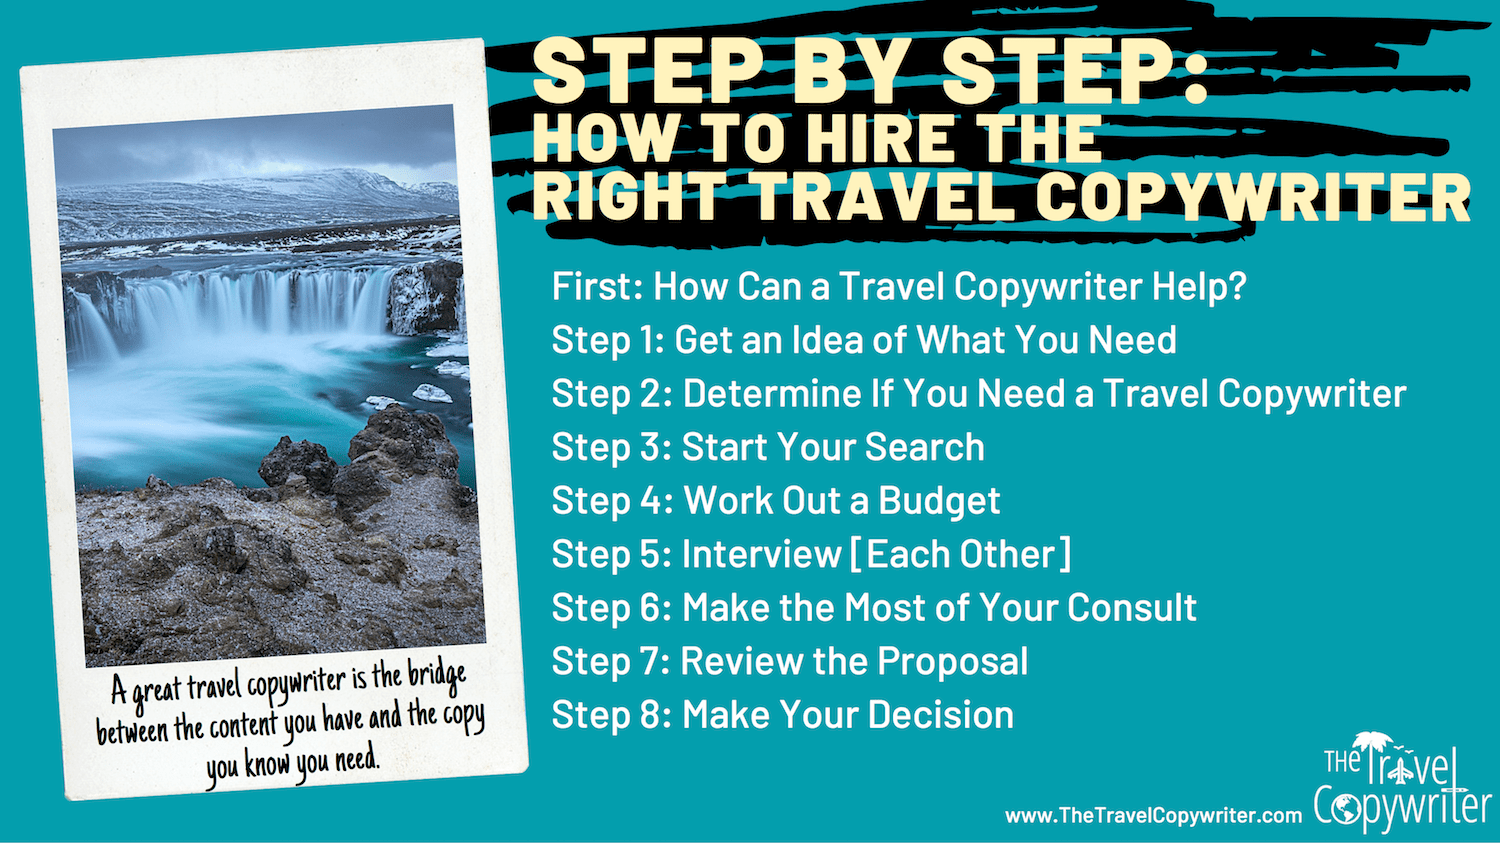 Hire a Travel Copywriter in 8 Steps